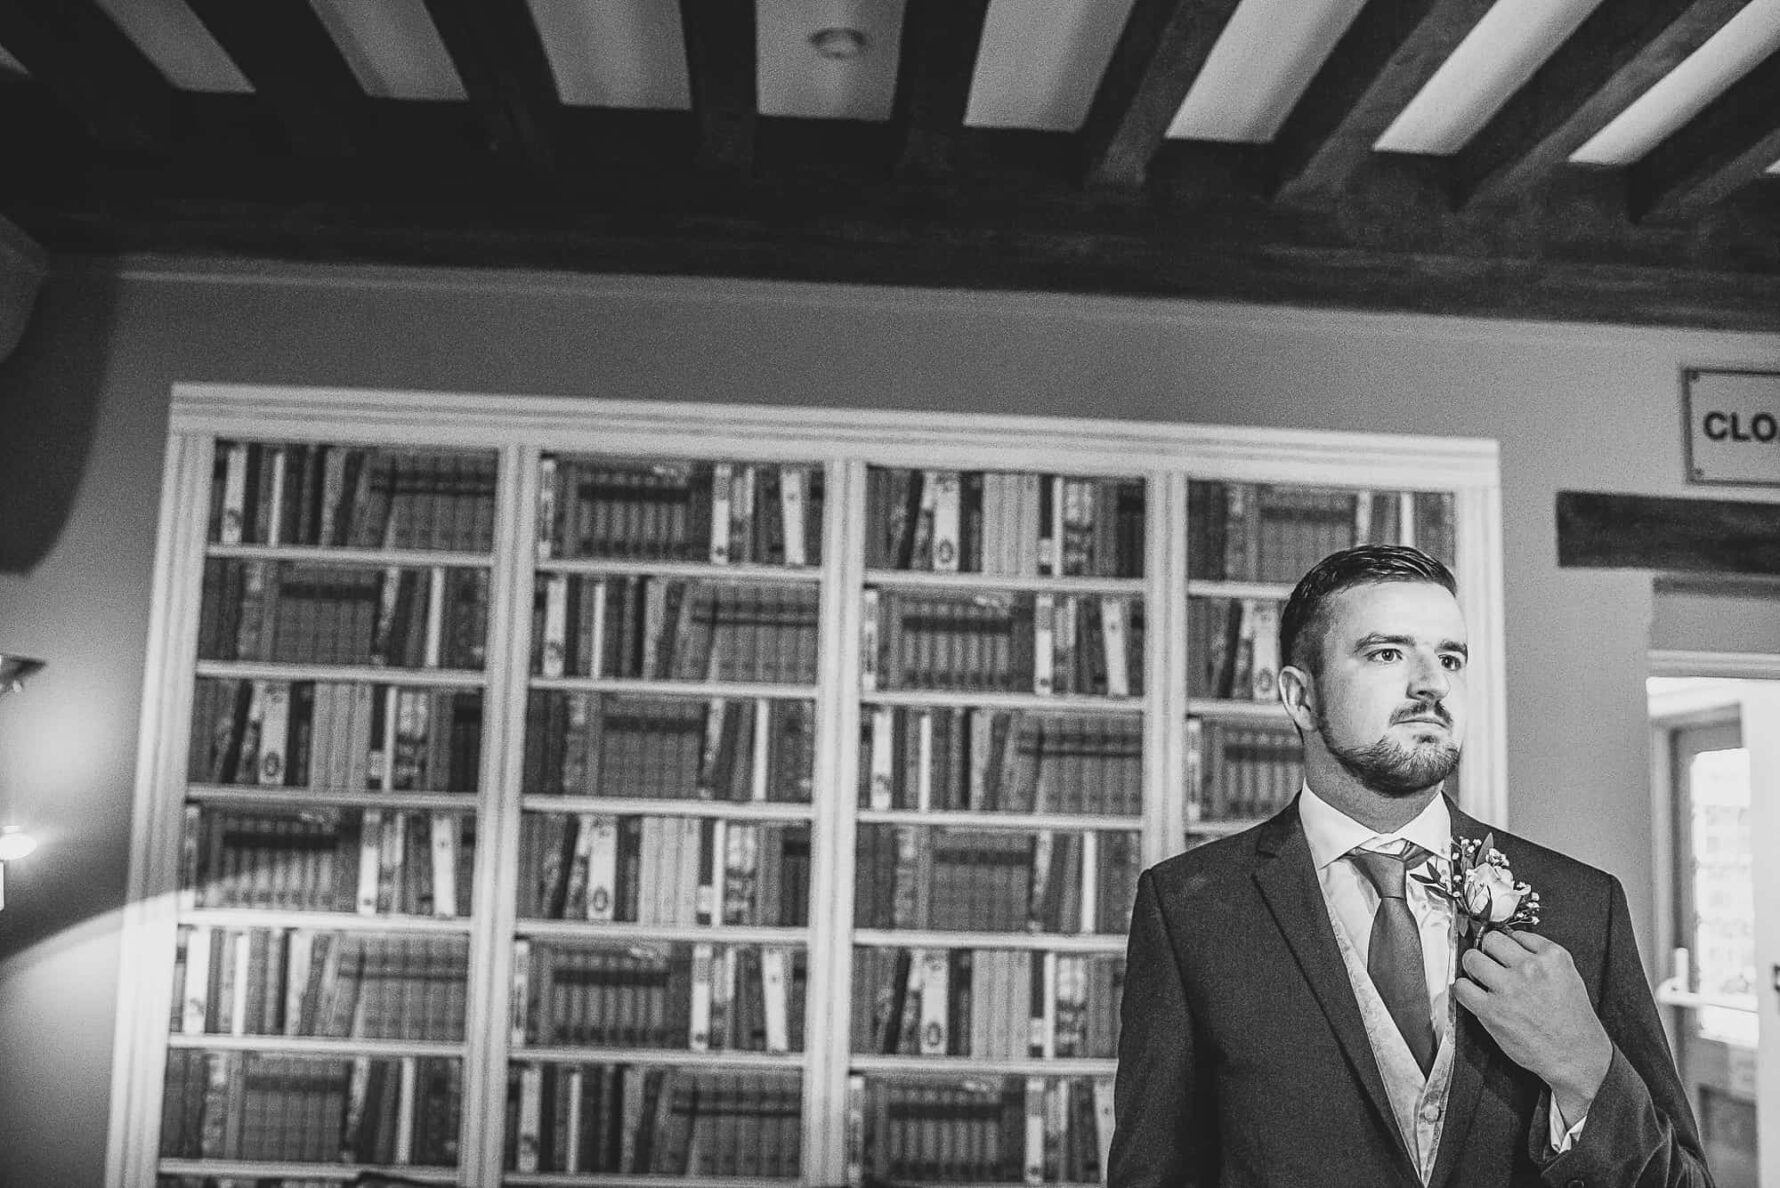 Nervous looking groom before wedding ceremony at The Old Hall in Ely